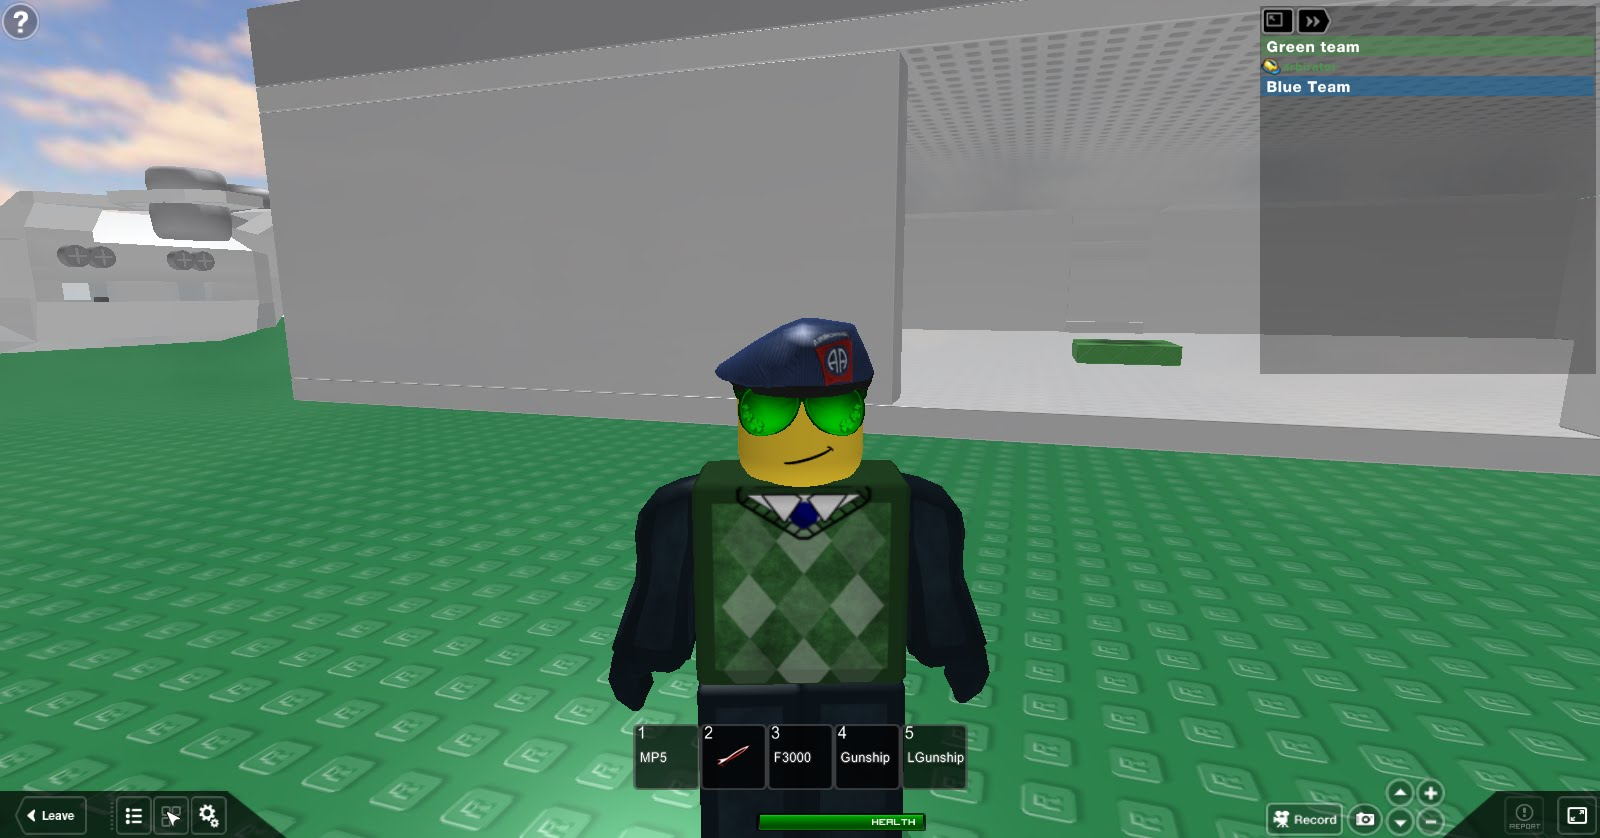 Cframe roblox download for free